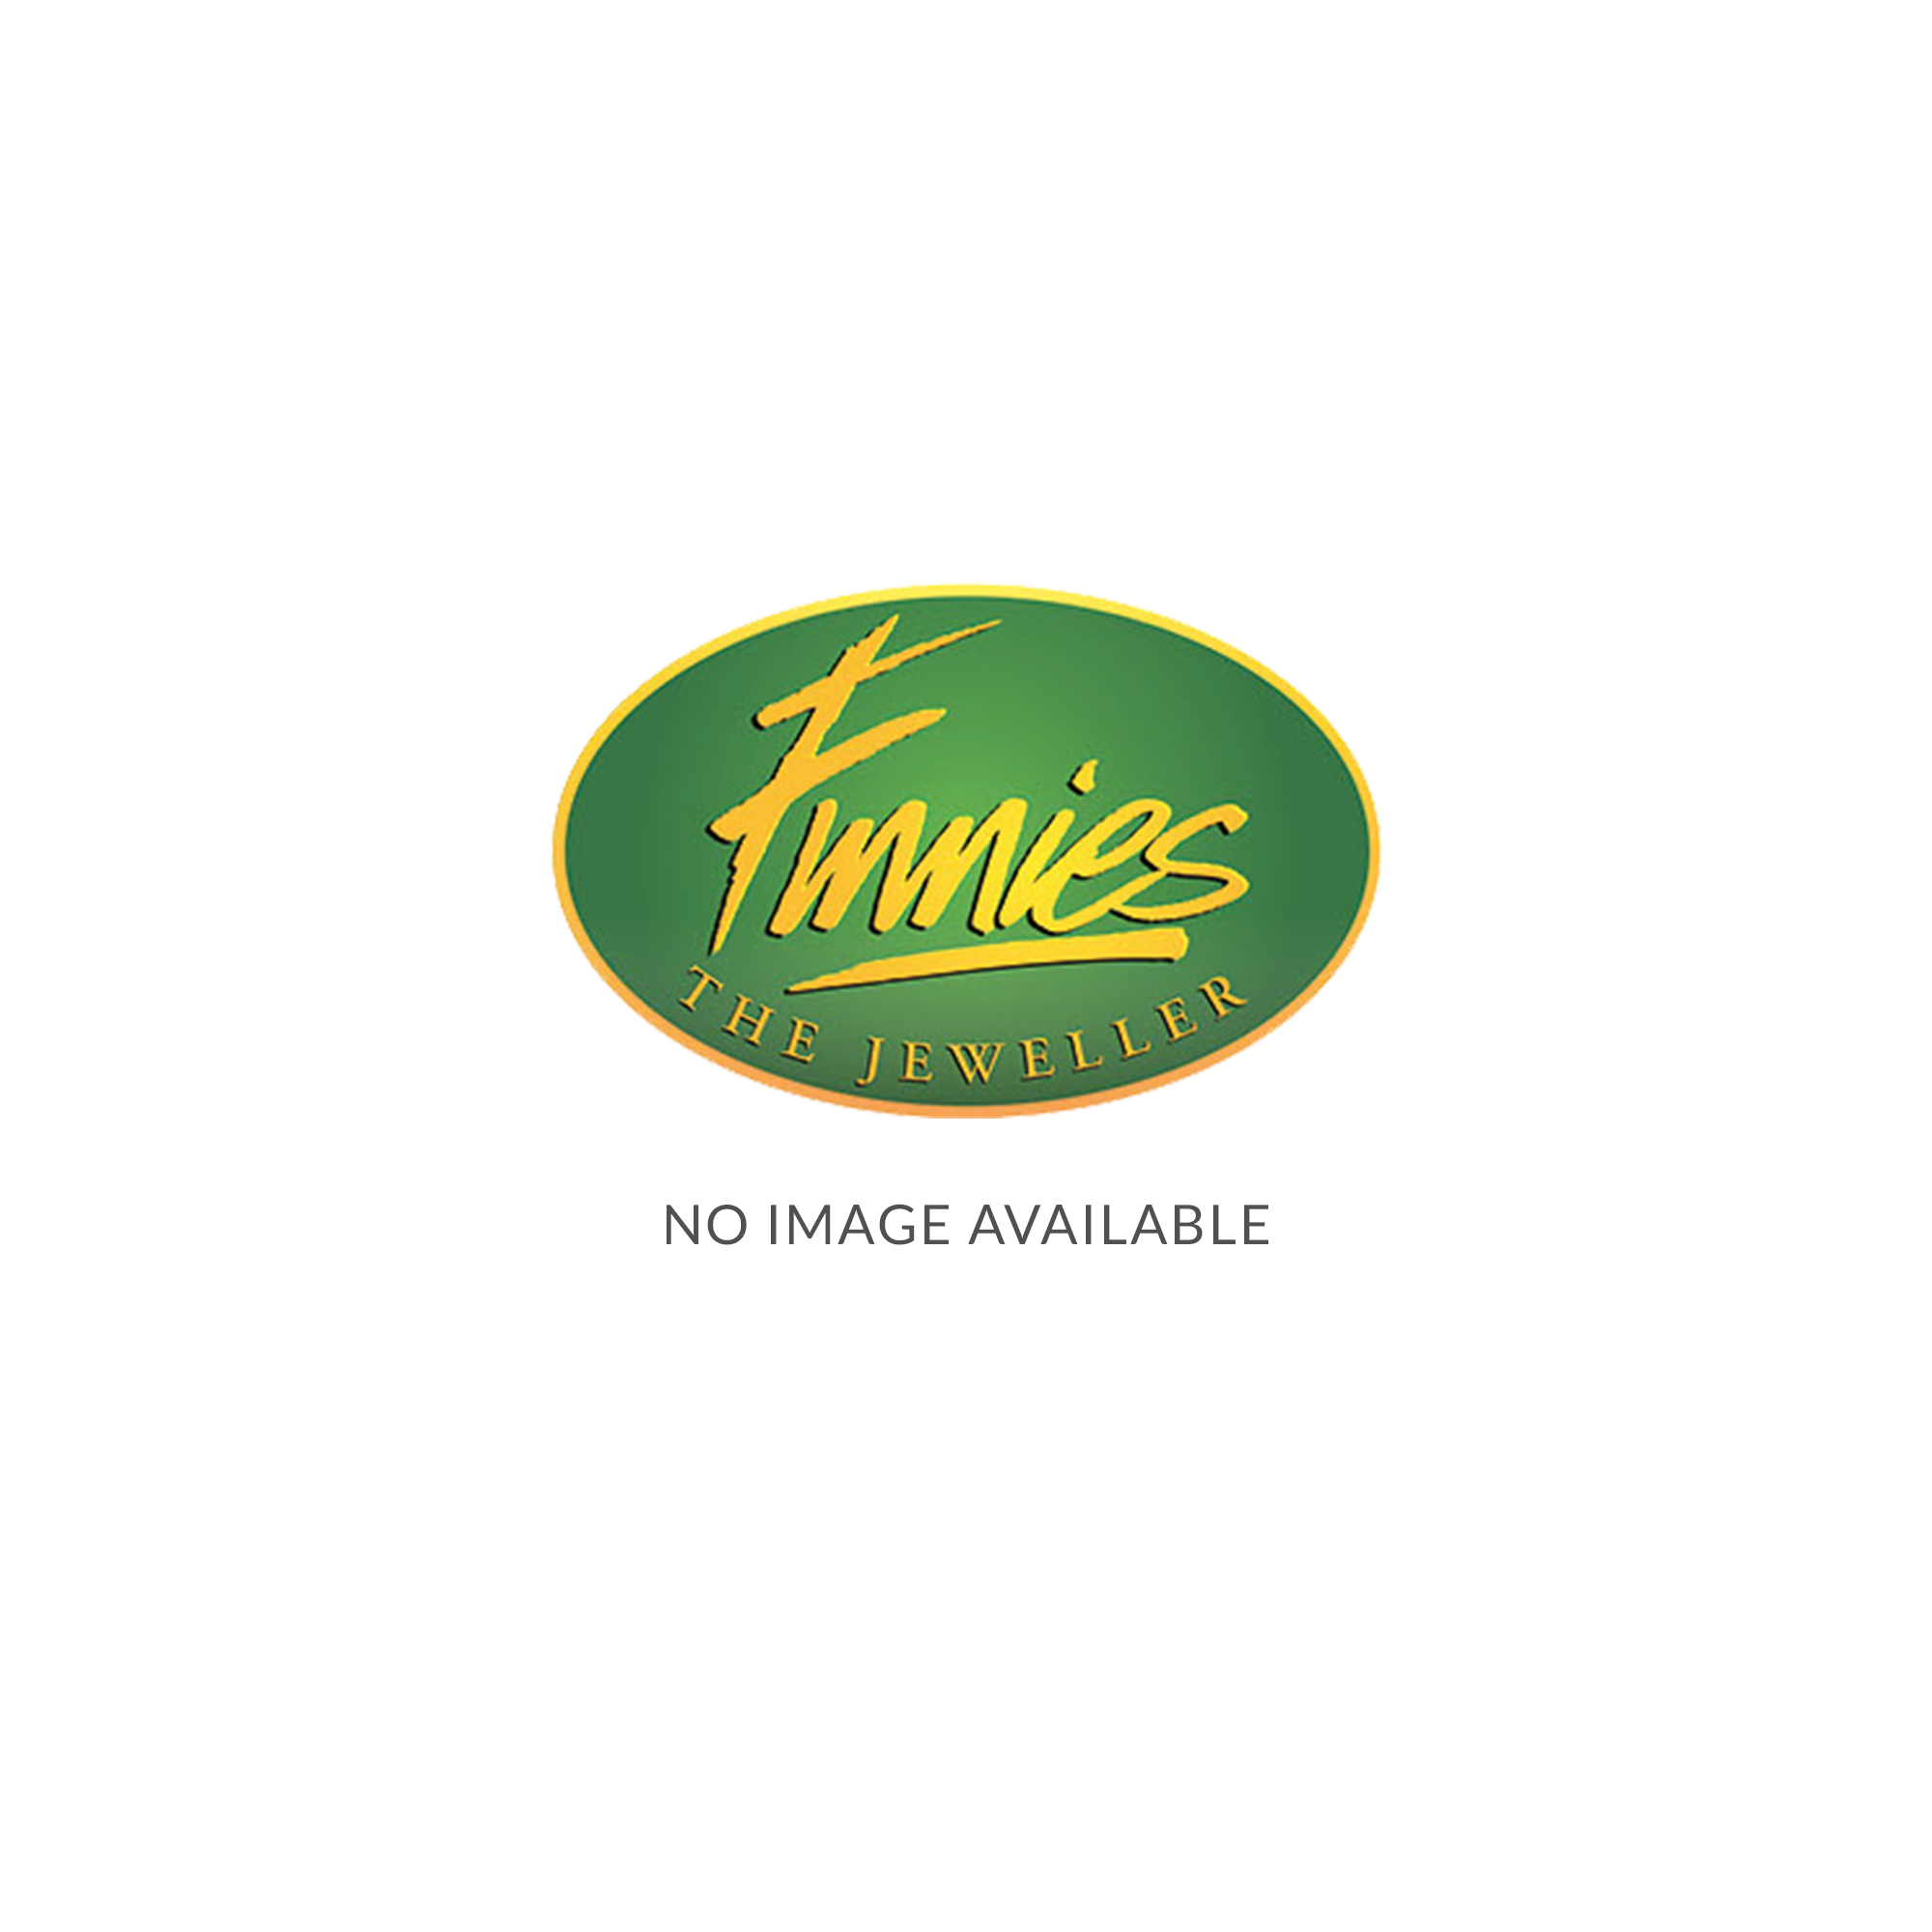 Silver Overlay on Glass Night Blue Vase